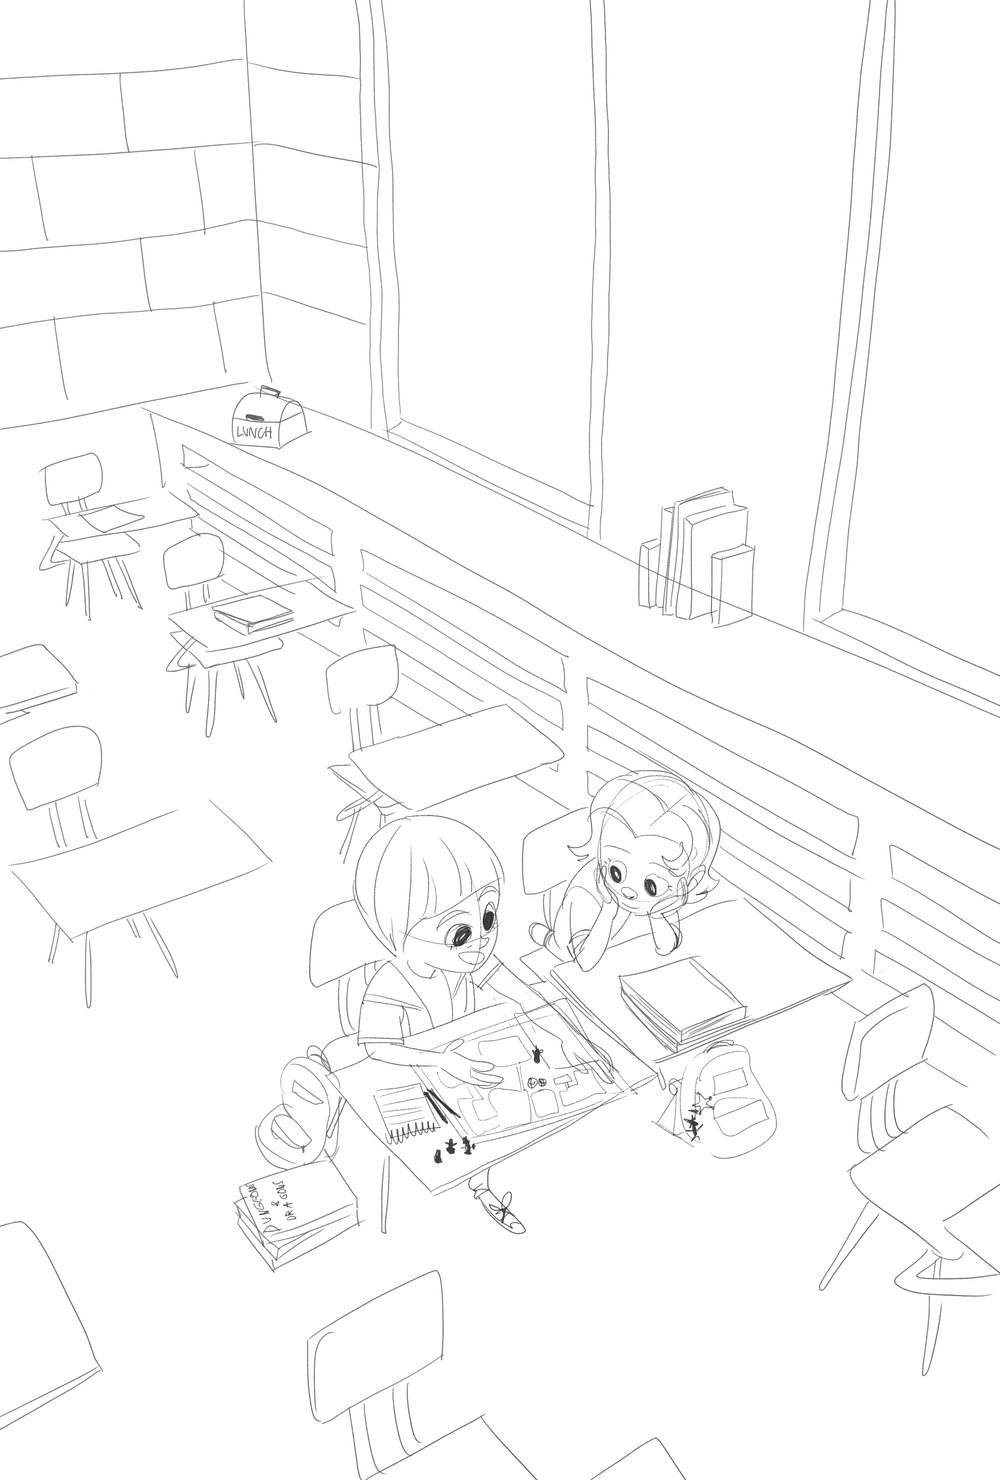 Here was the sketch I did, depicting Will Byers tutoring the newly Jane Hopper after school in Dungeons & Dragons.